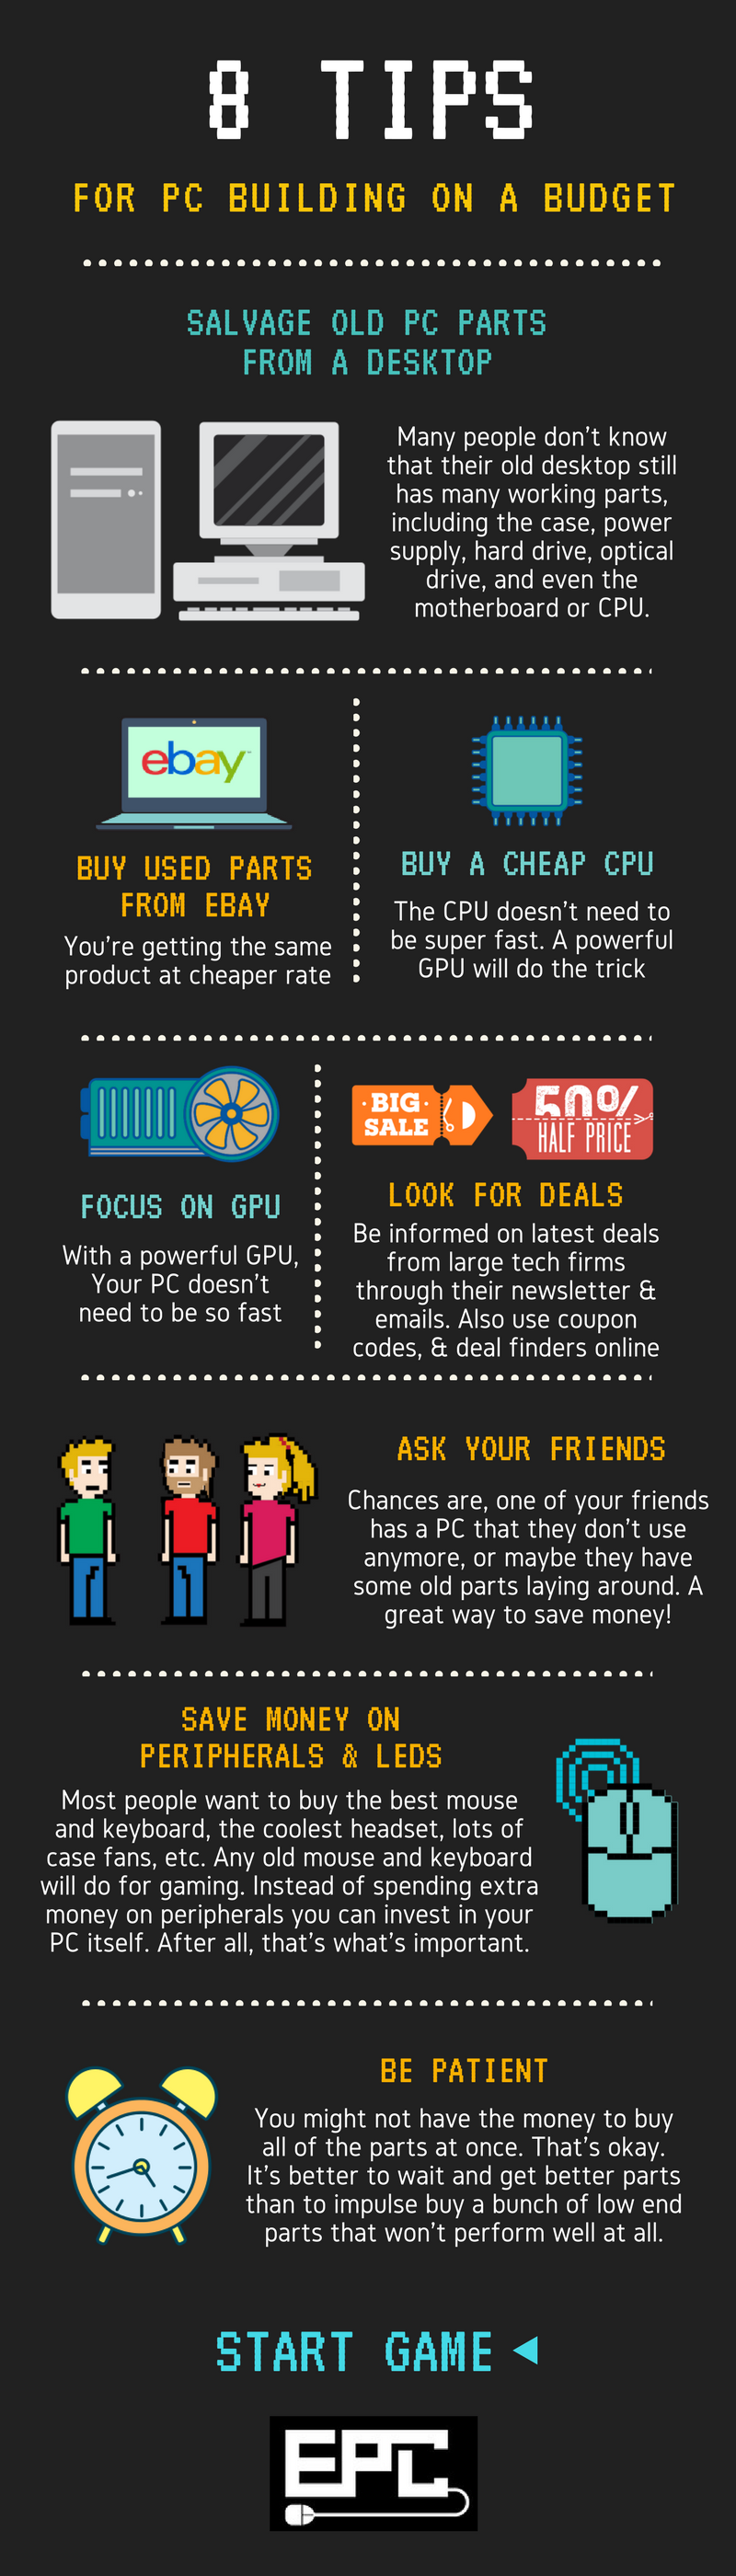 CHEAP PC INFOGRAPHIC